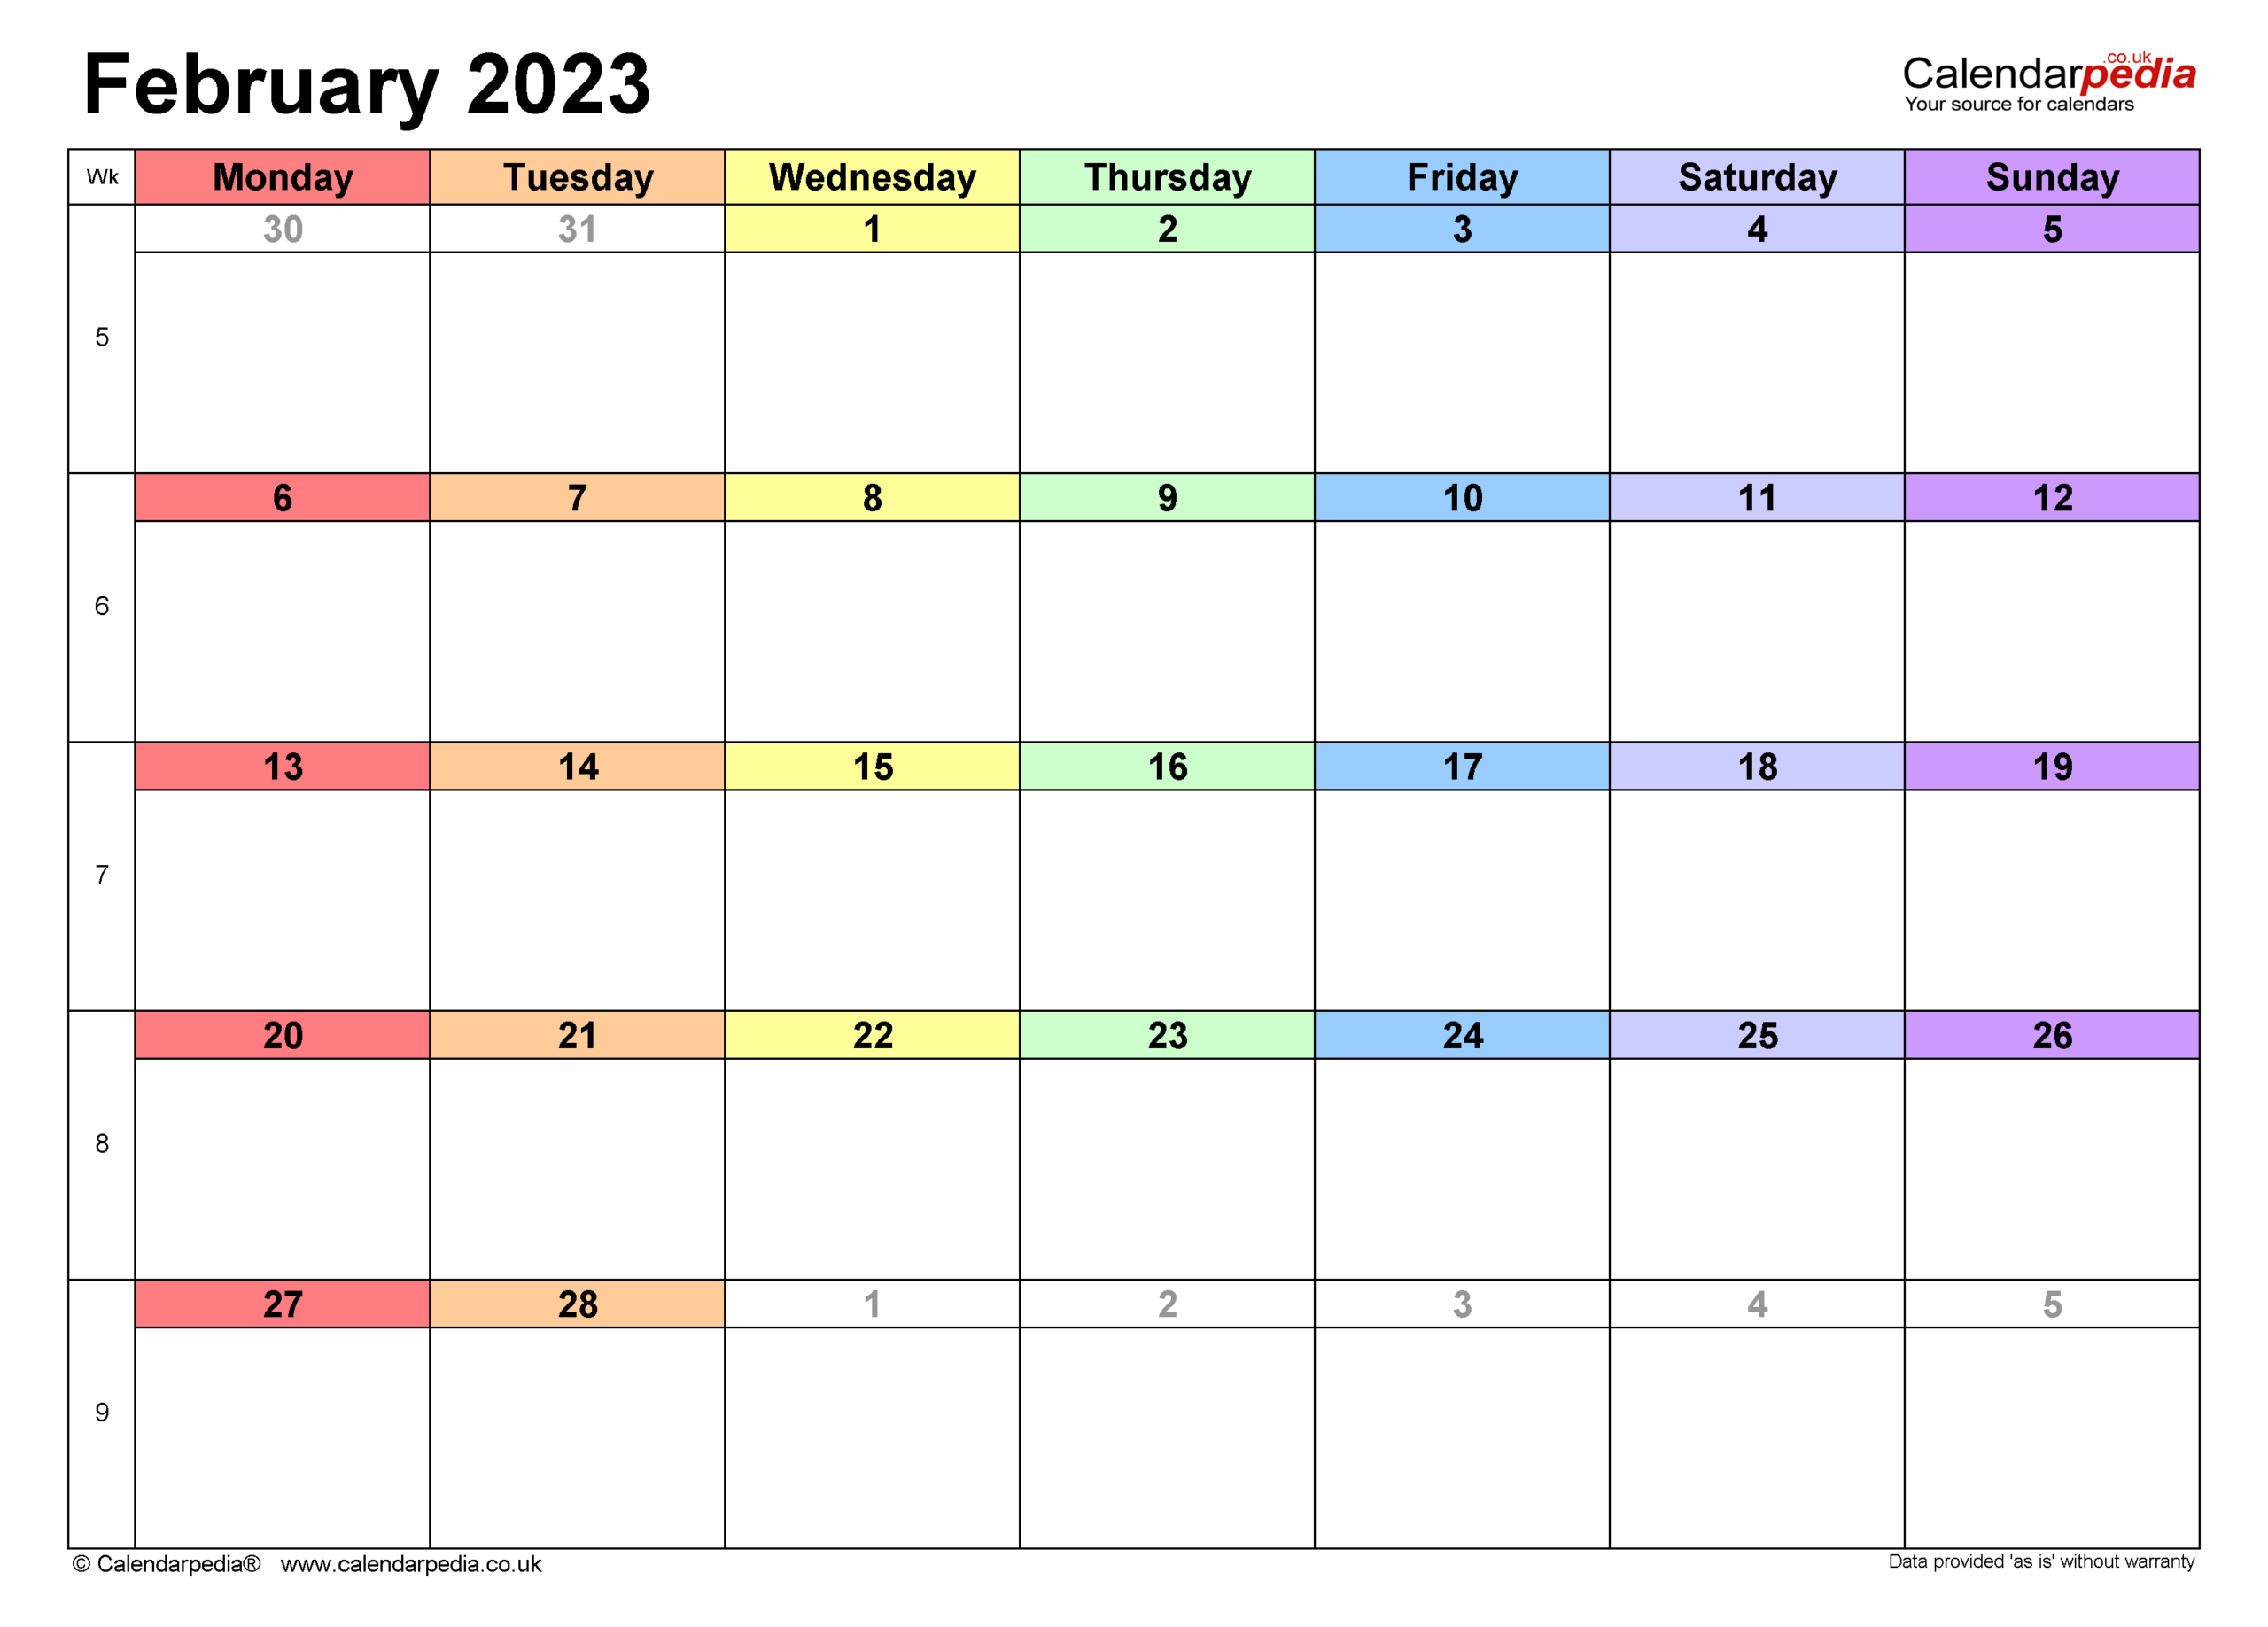 Calendar February 2023 (Uk) With Excel, Word And Pdf Templates with regard to Walmart 2022 2023 Fiscal Calendar